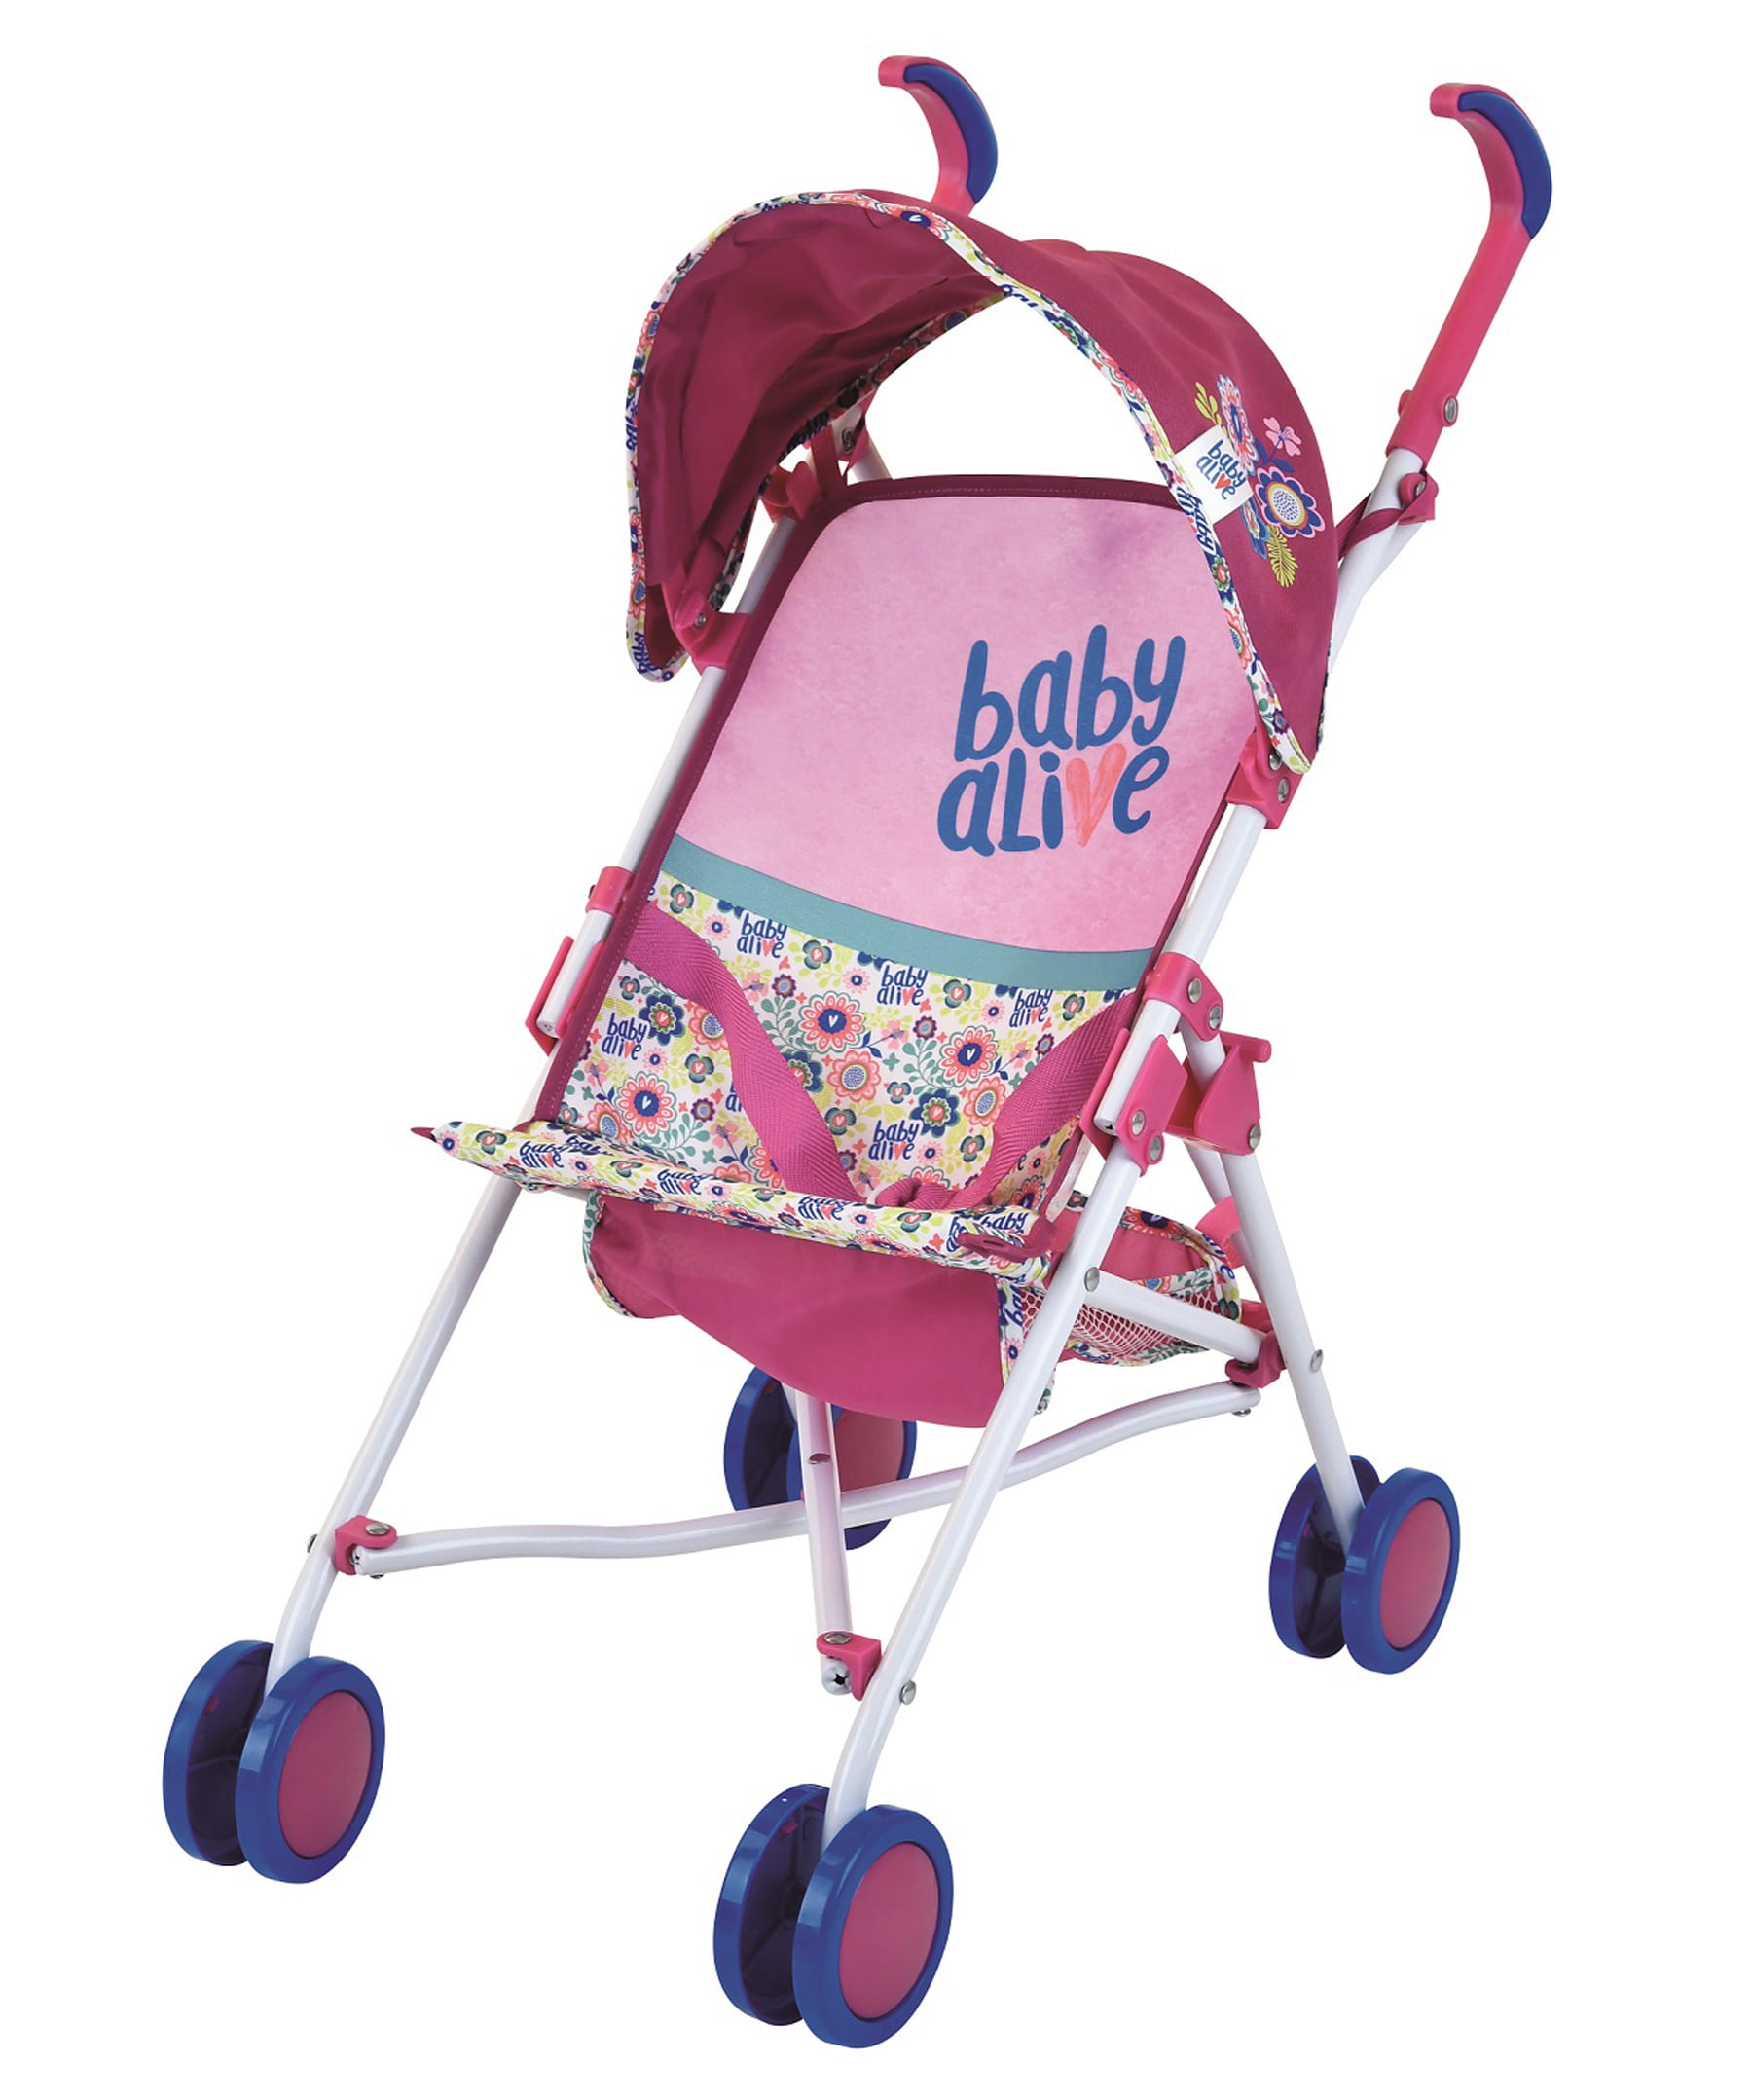 Hasbro Baby Alive Doll Stroller by Hauck